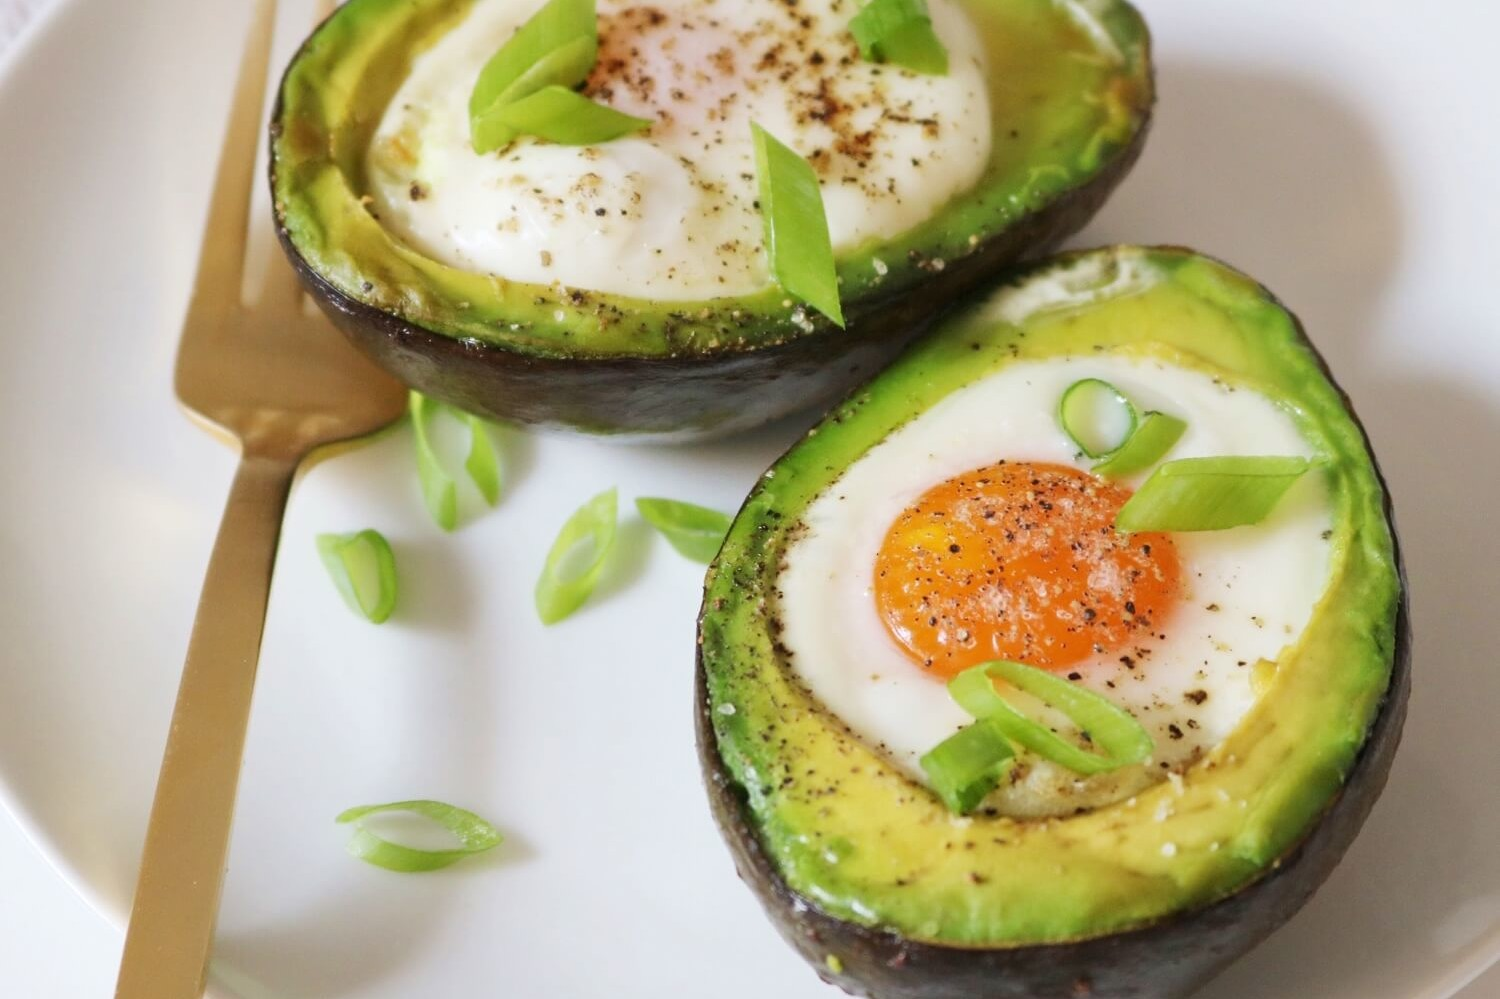 A recipe for avocado egg boats by dietitian Keri Glassman. Avocado is halved, and each half is filled with an organic egg and baked for a nutritious combination of protein and healthy fats. | peteandgerrys.com